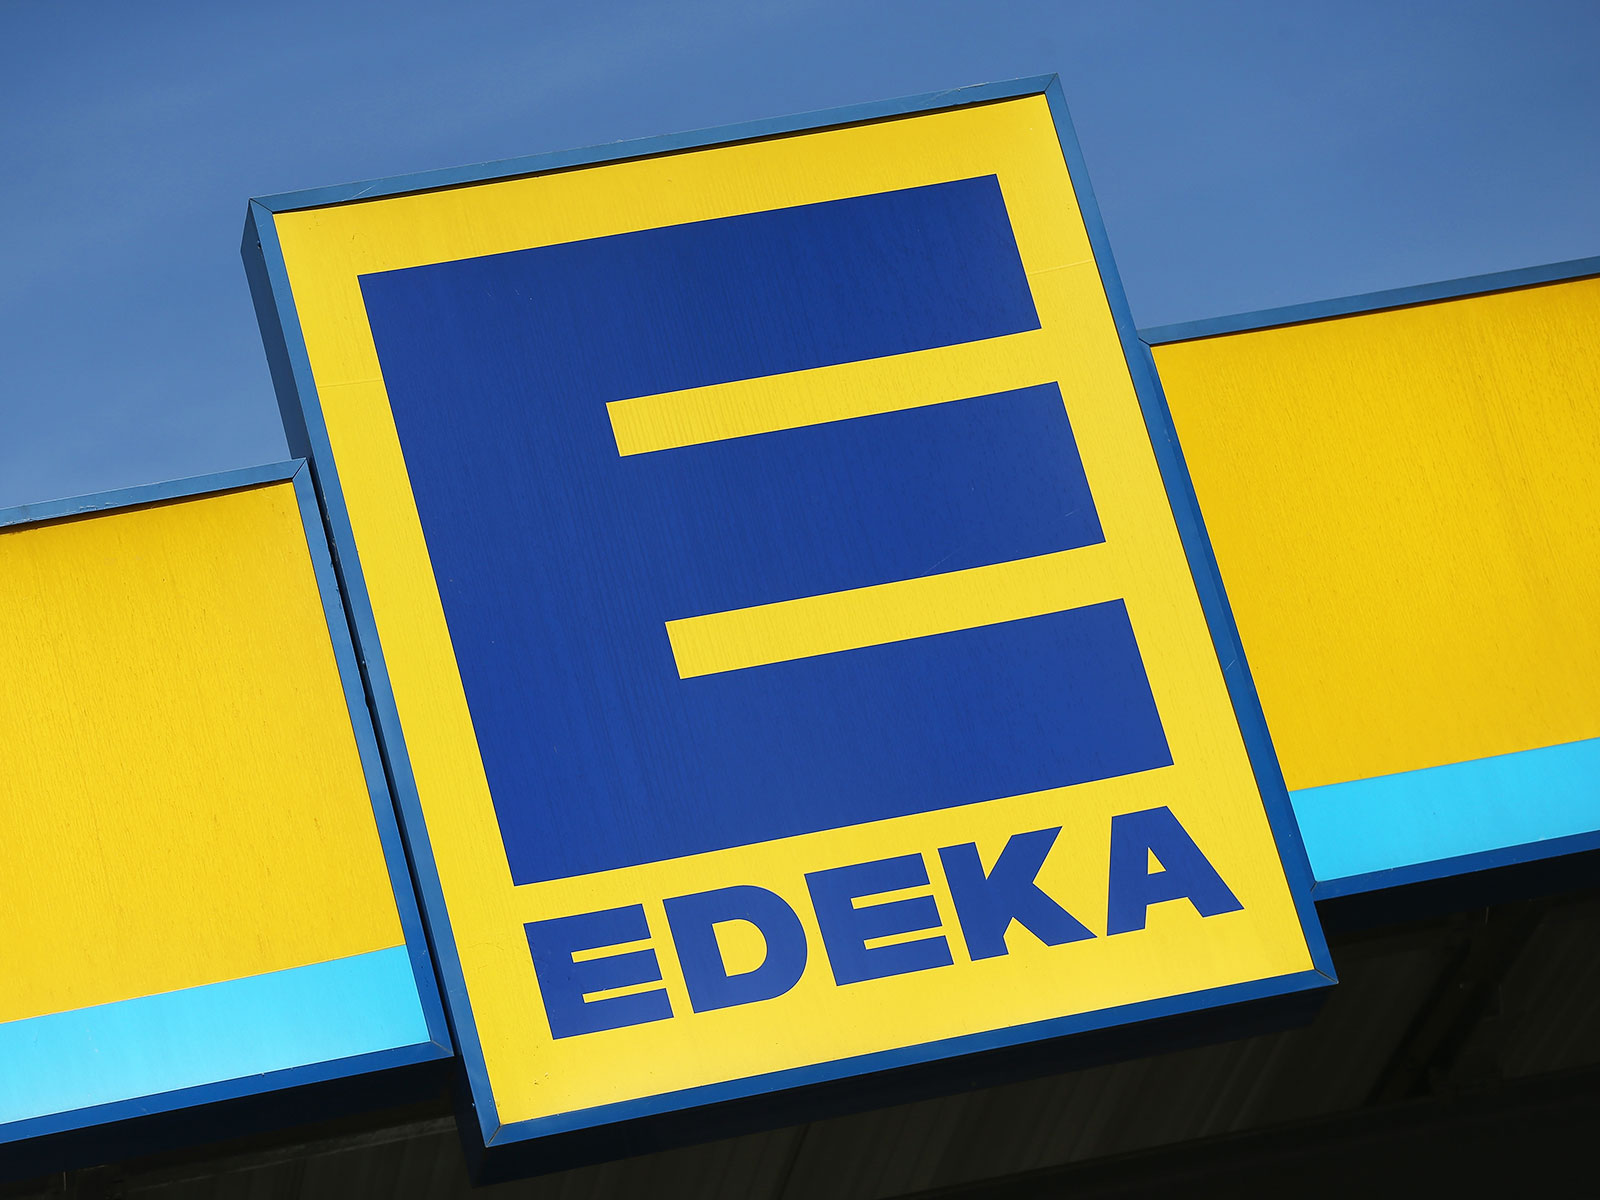 edeka grocery store